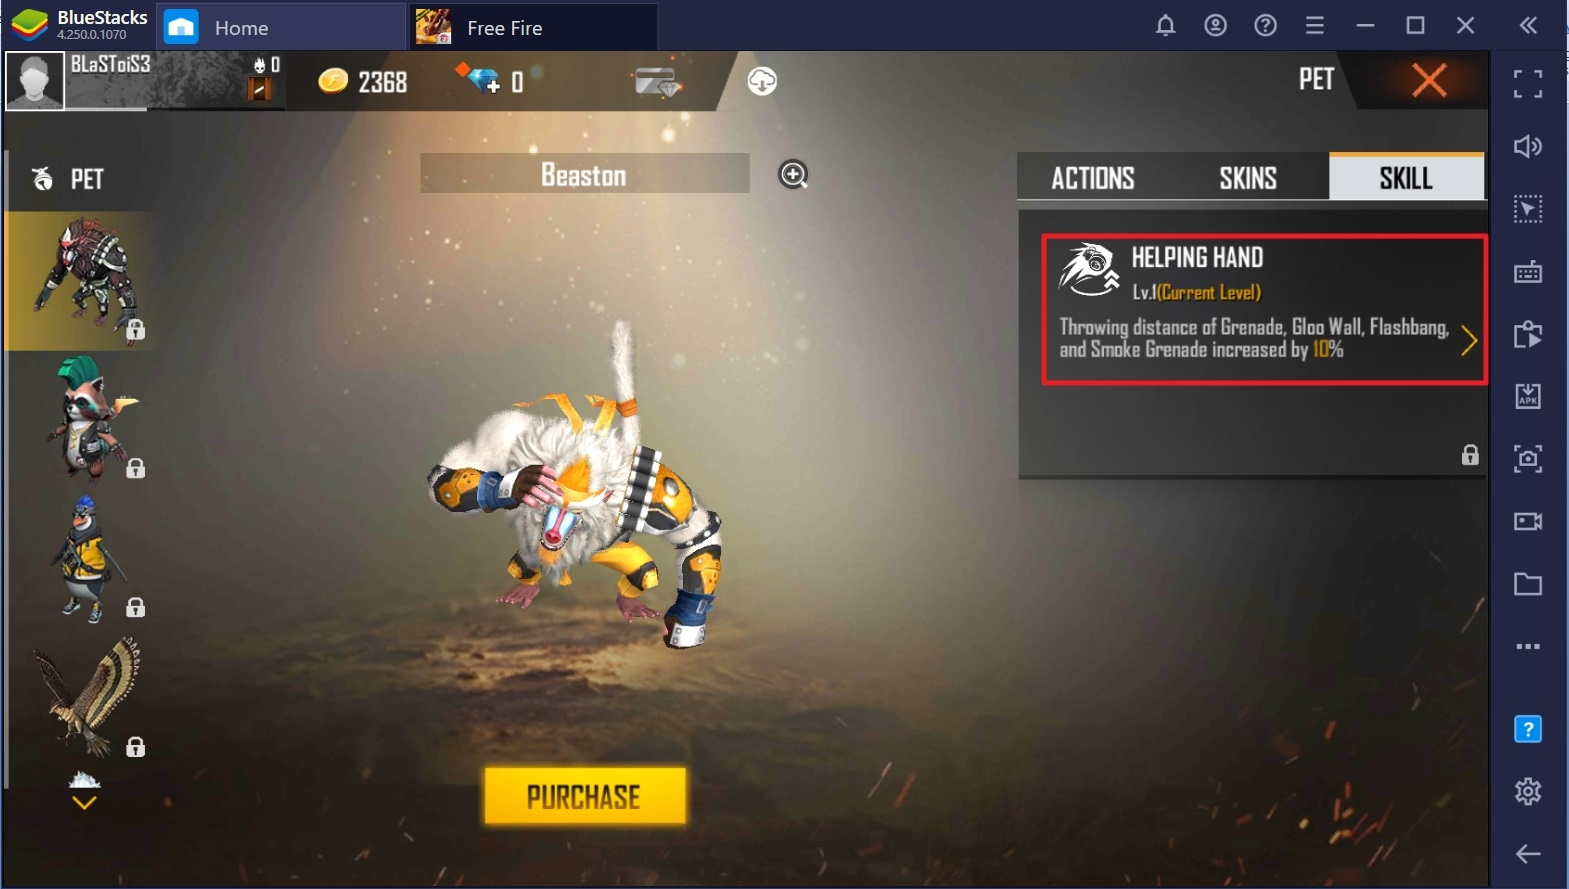 The New Pet 'Beaston' is Now Available in Free Fire – Full Details Inside